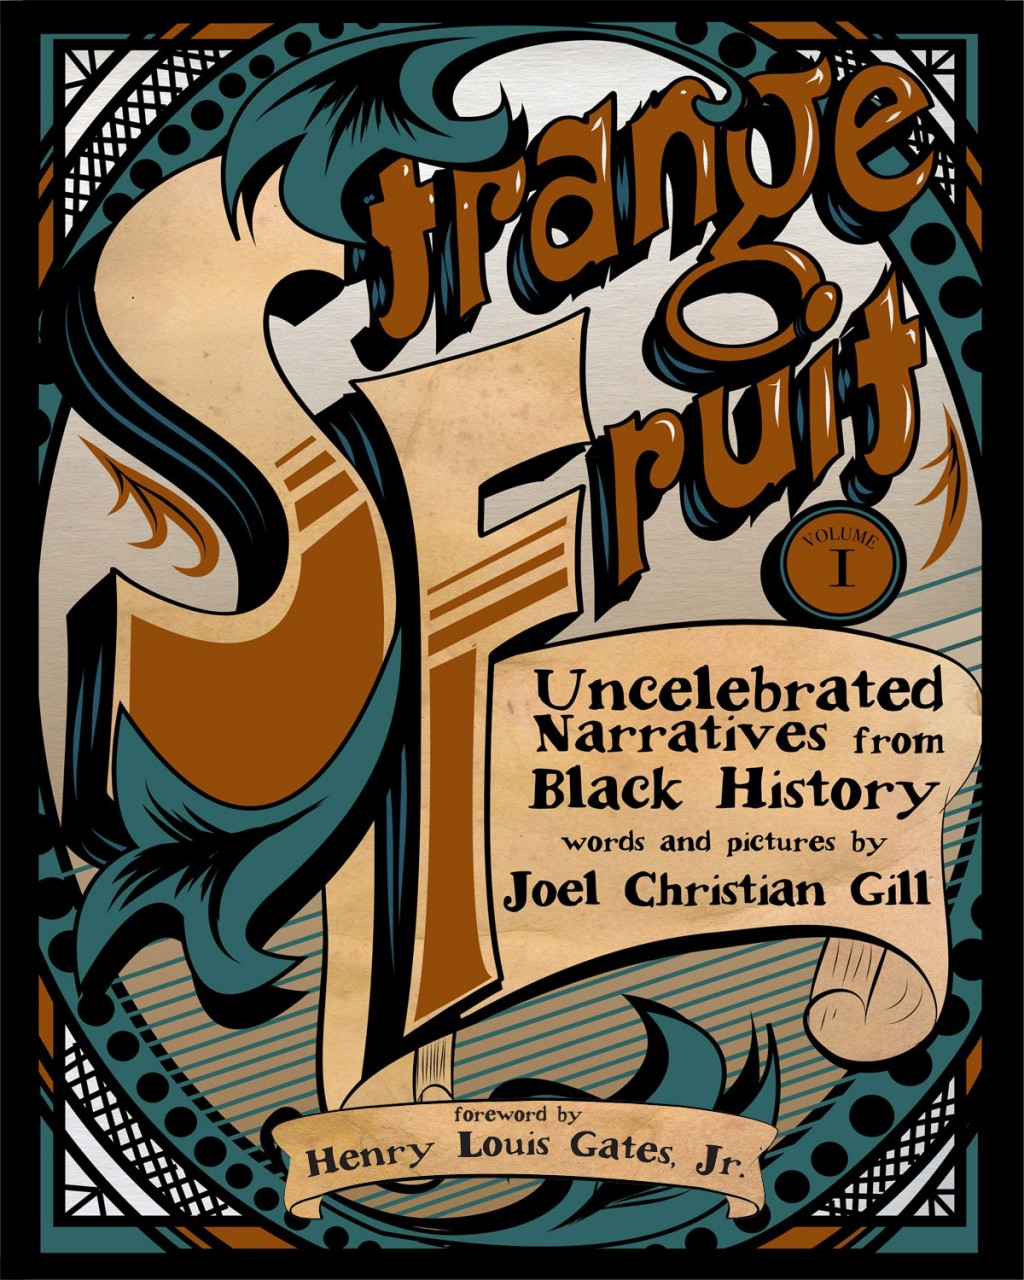 Strange Fruit book cover